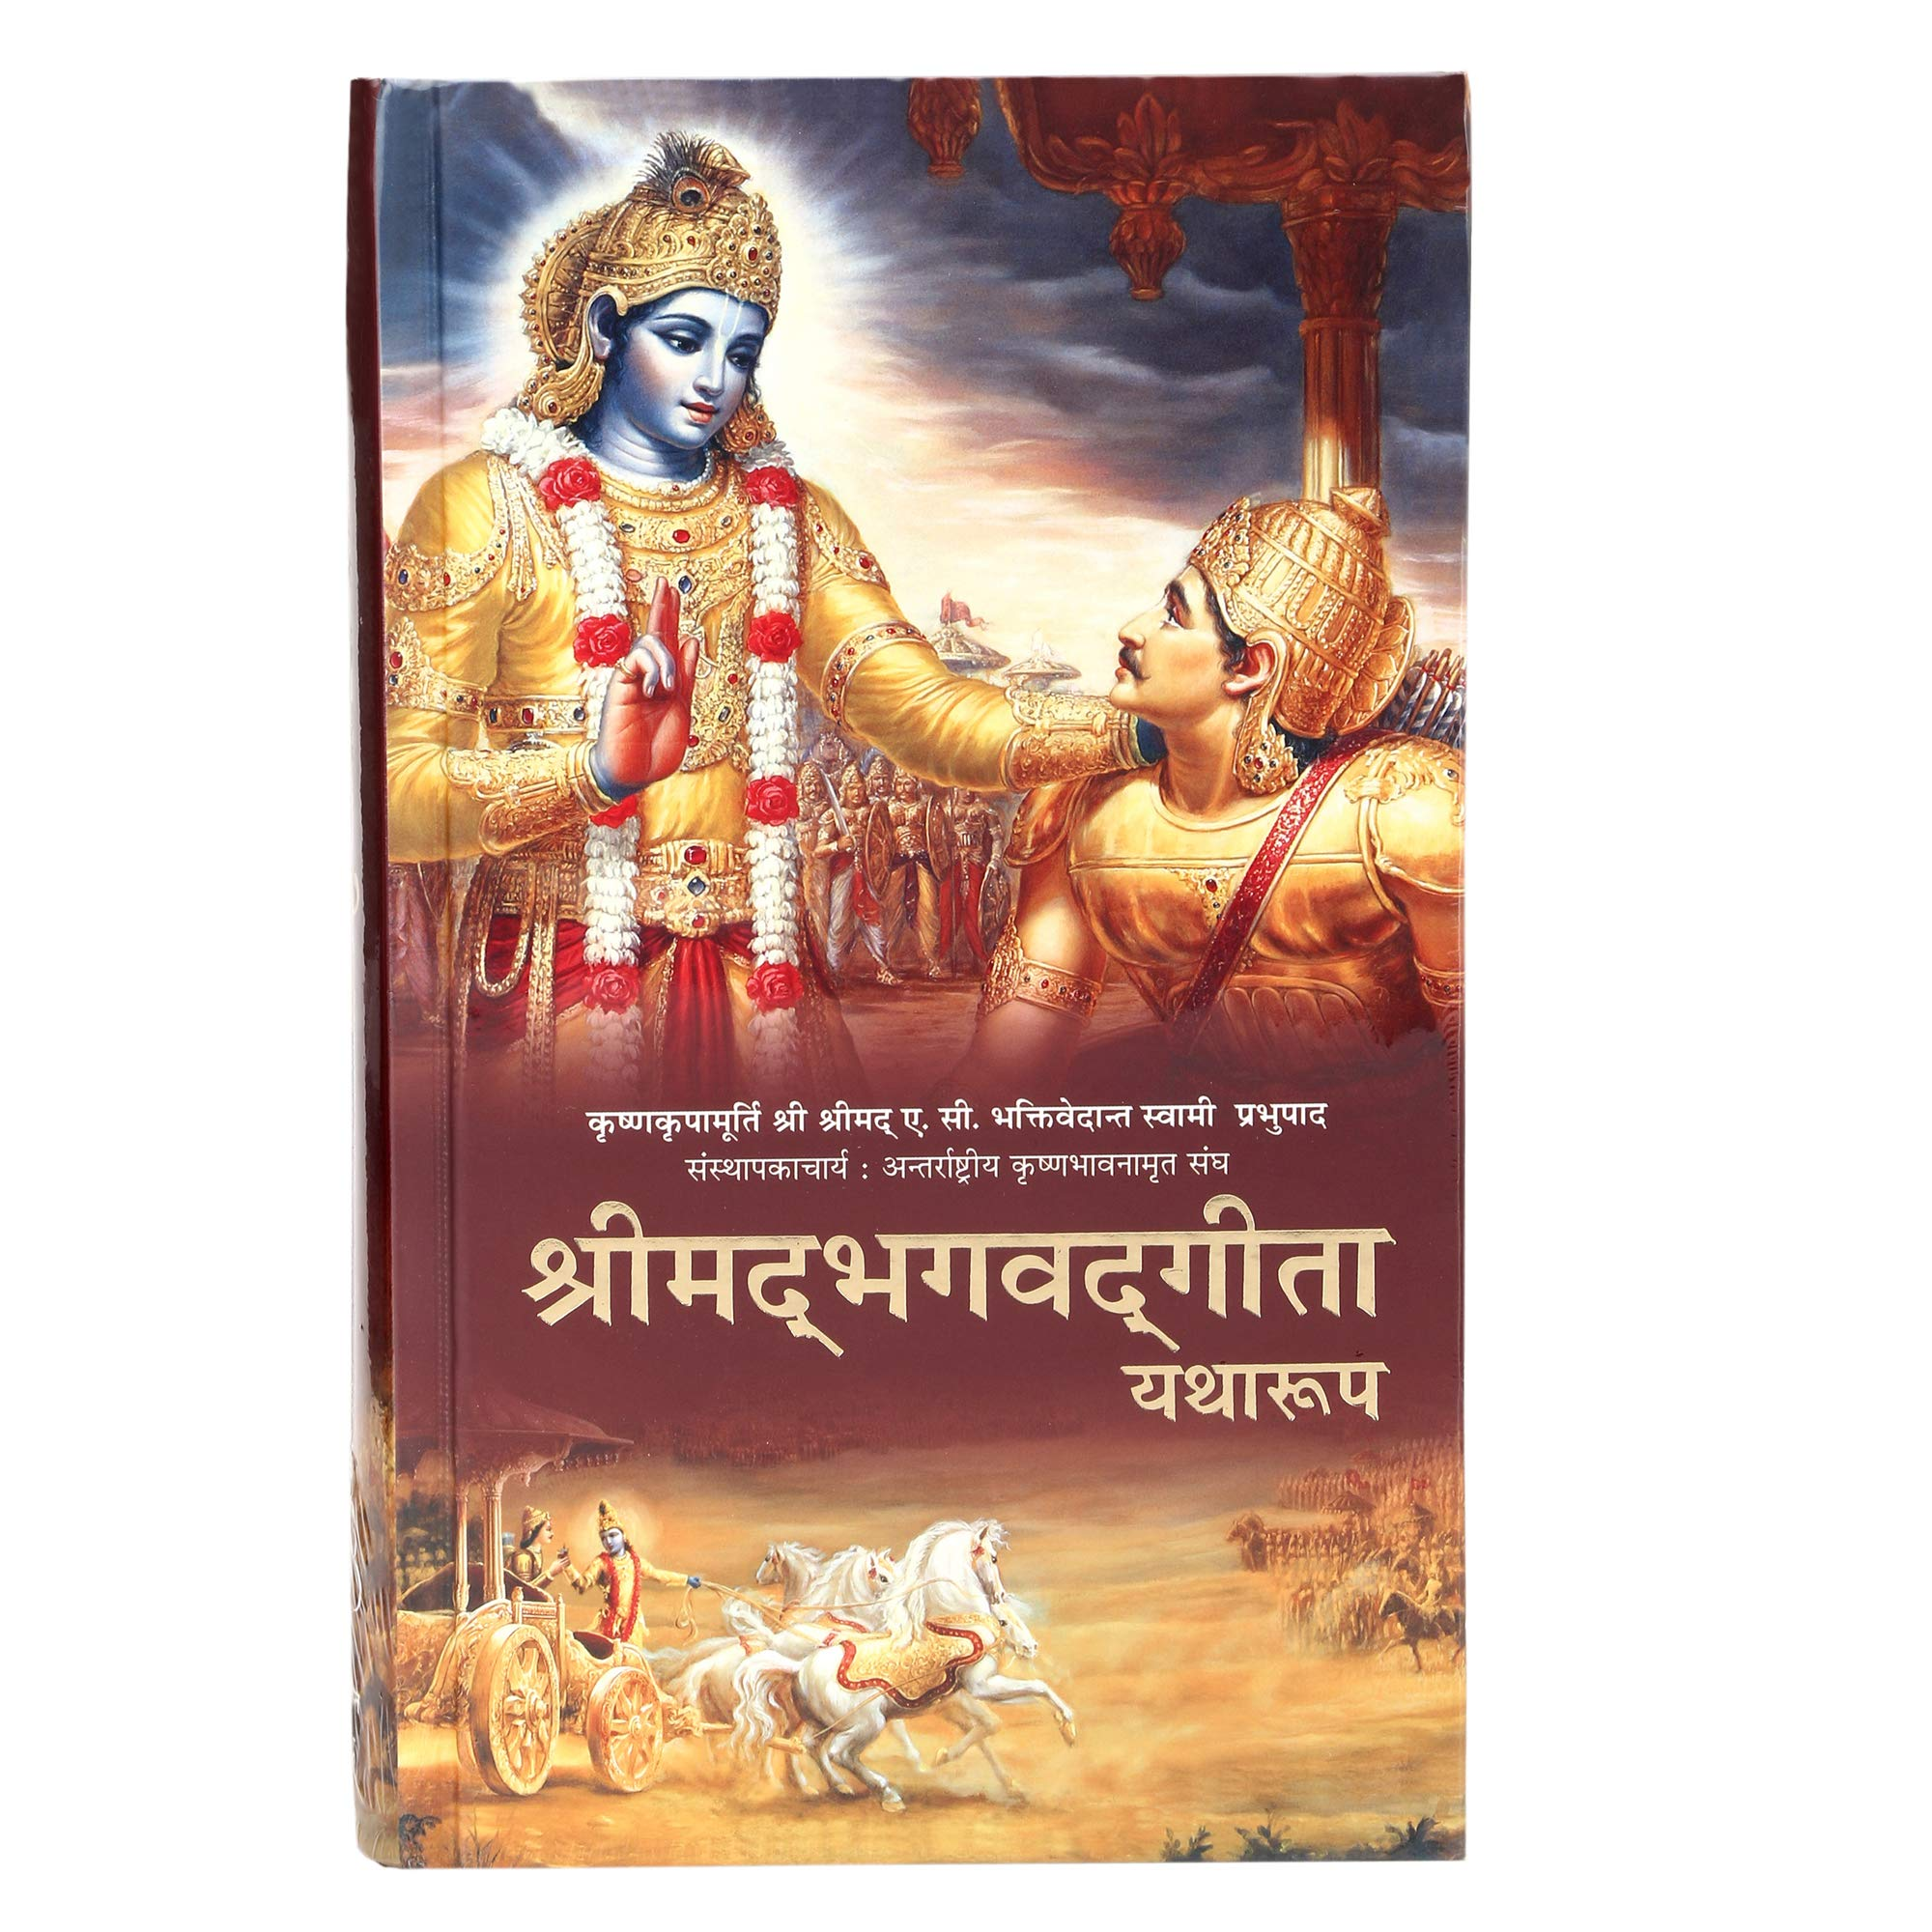 Buy Bhagavad Gita: Yatharoop Book Online at Low Prices in India